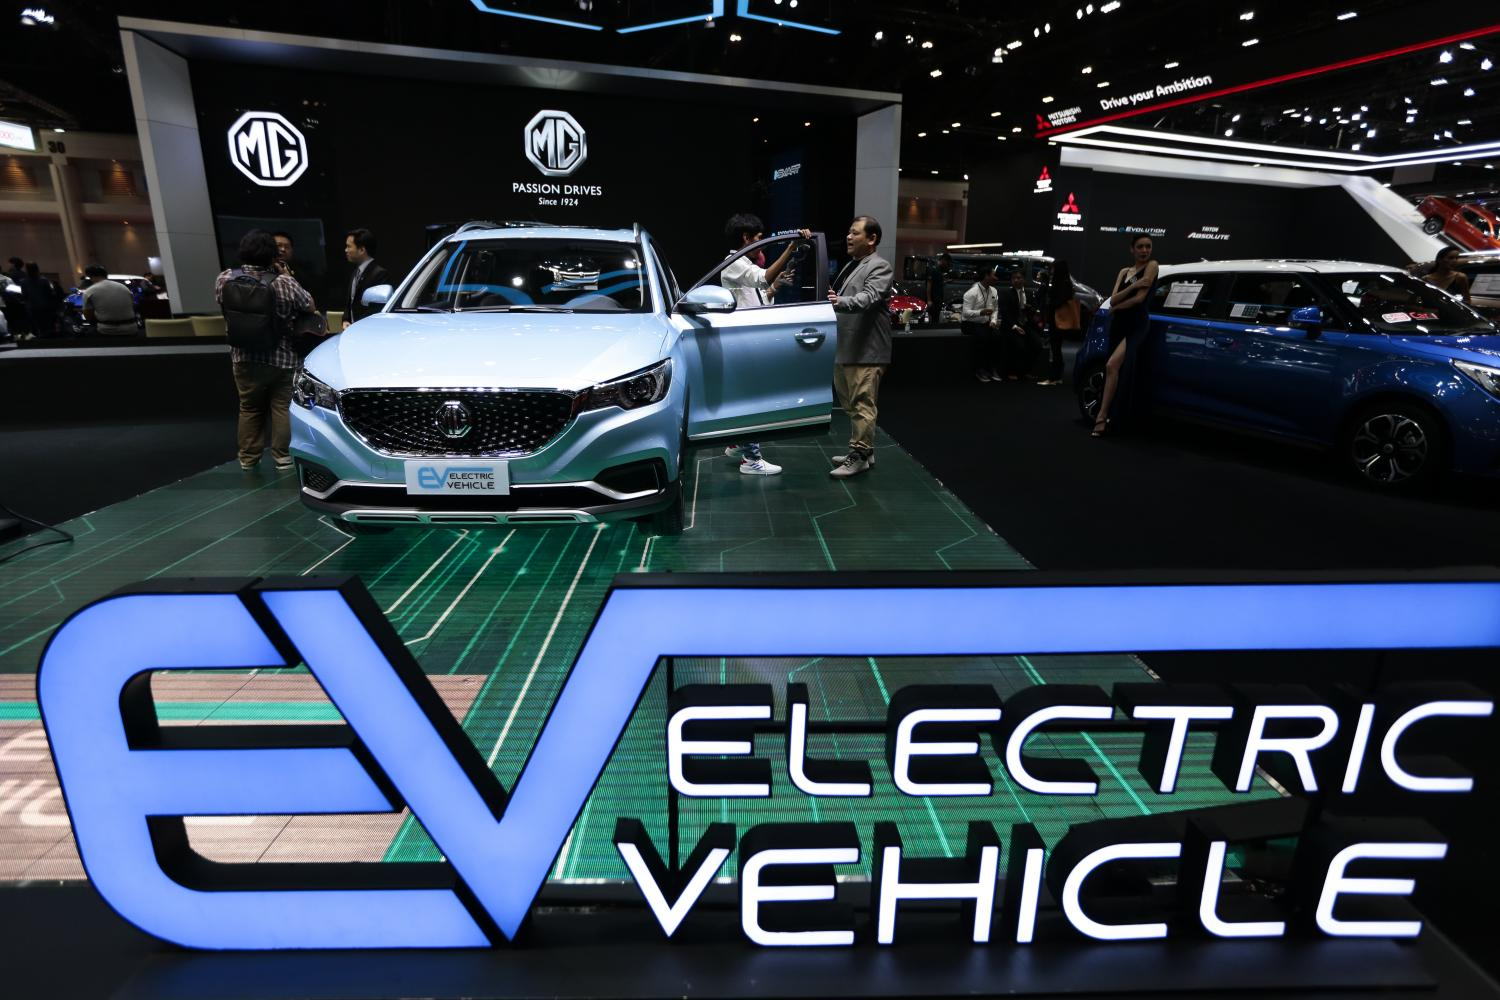 Electric vehicles are showcased at Bangkok International Motor Show.